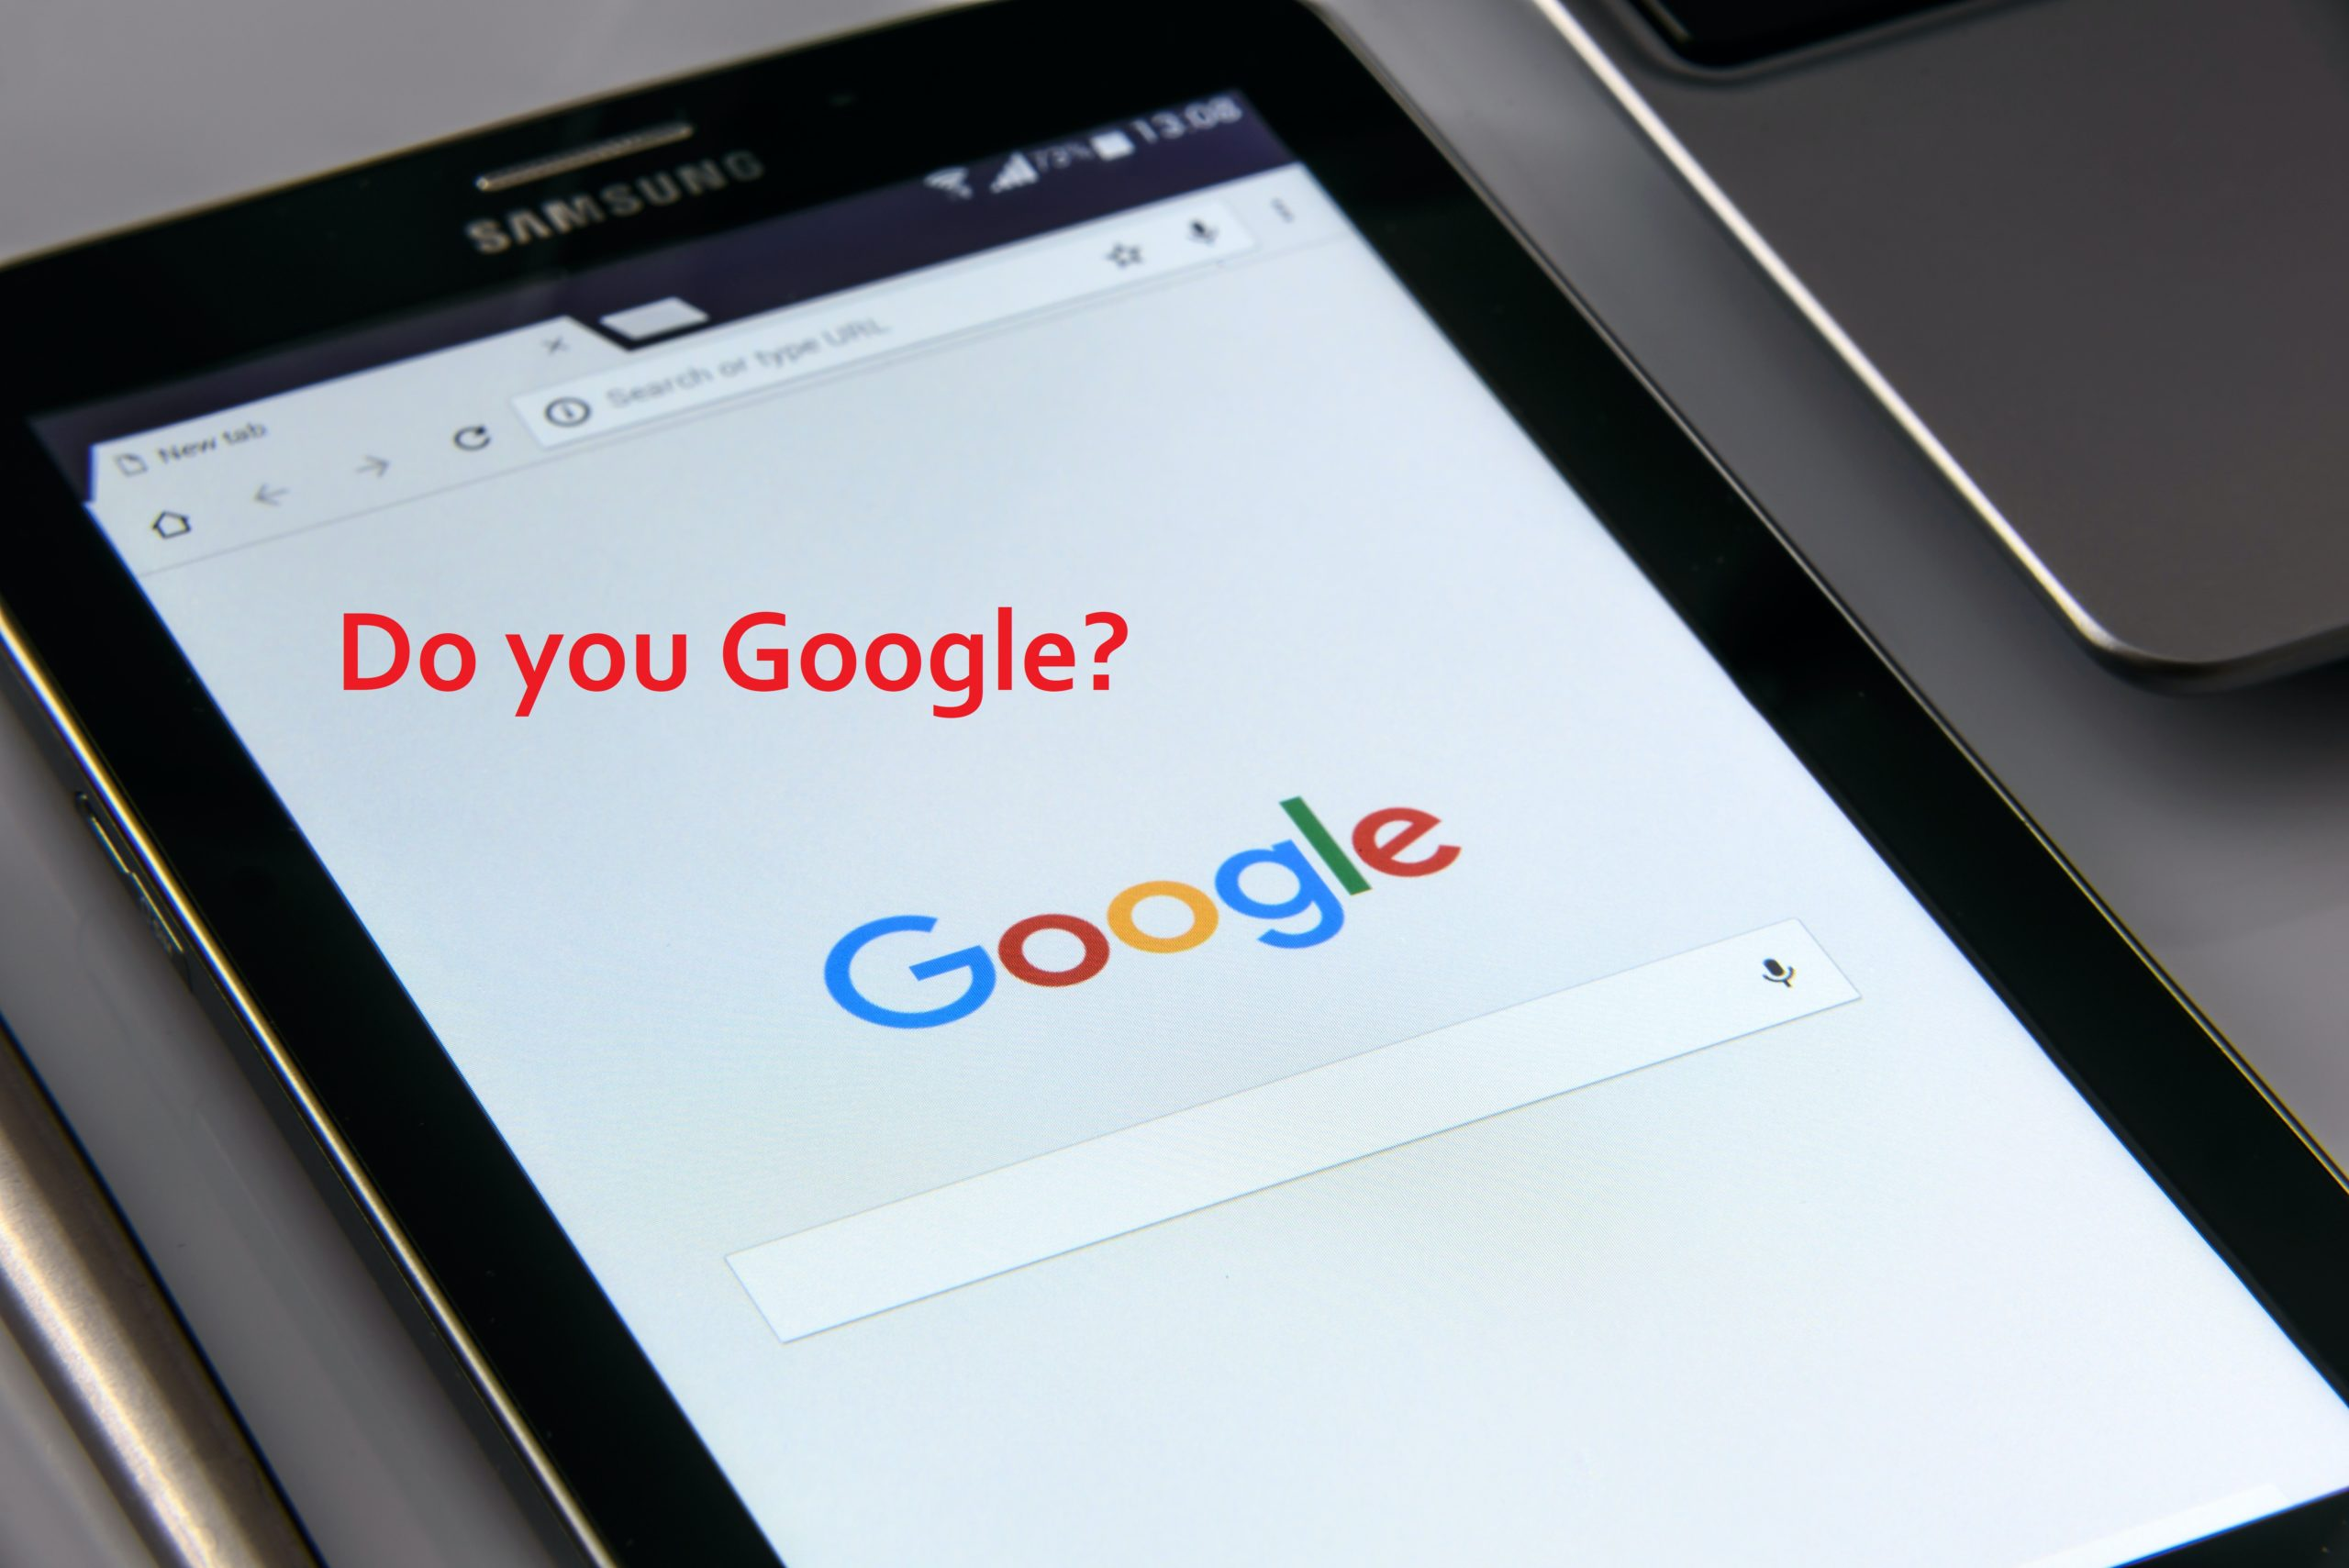 what does to google mean